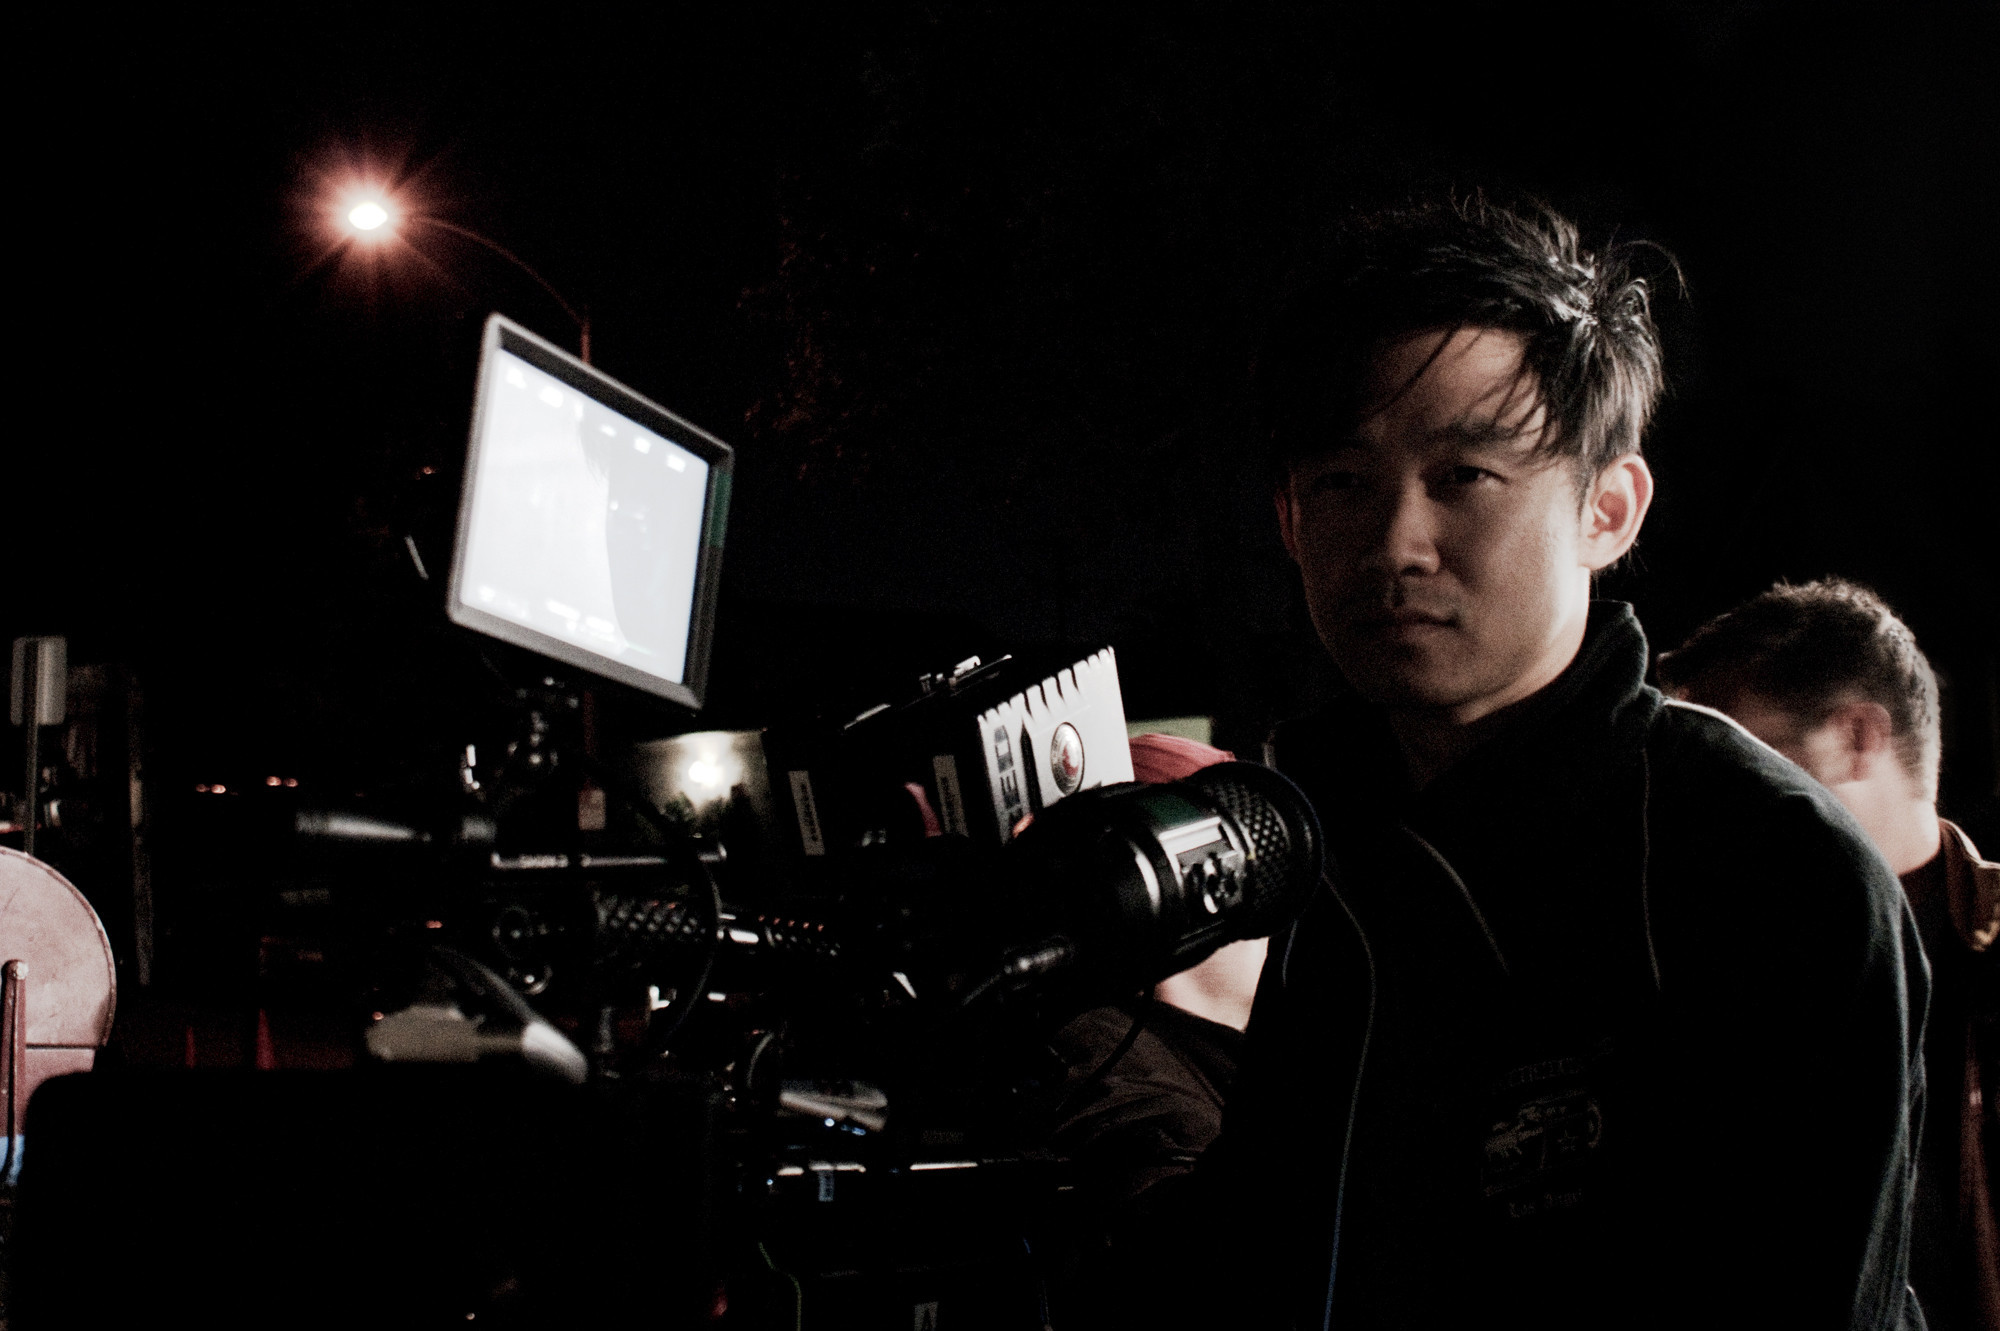 james wan youtubejames wan фильмы, james wan films, james wan filmleri, james wan wiki, james wan net worth, james wan director, james wan imdb, james wan wife, james wan wikipedia, james wan dead space, james wan csfd, james wan youtube, james wan the nun, james wan family, james wan instagram, james wan twitter, james wan kinopoisk, james wan mortal kombat, james wan filmography, james wan movies